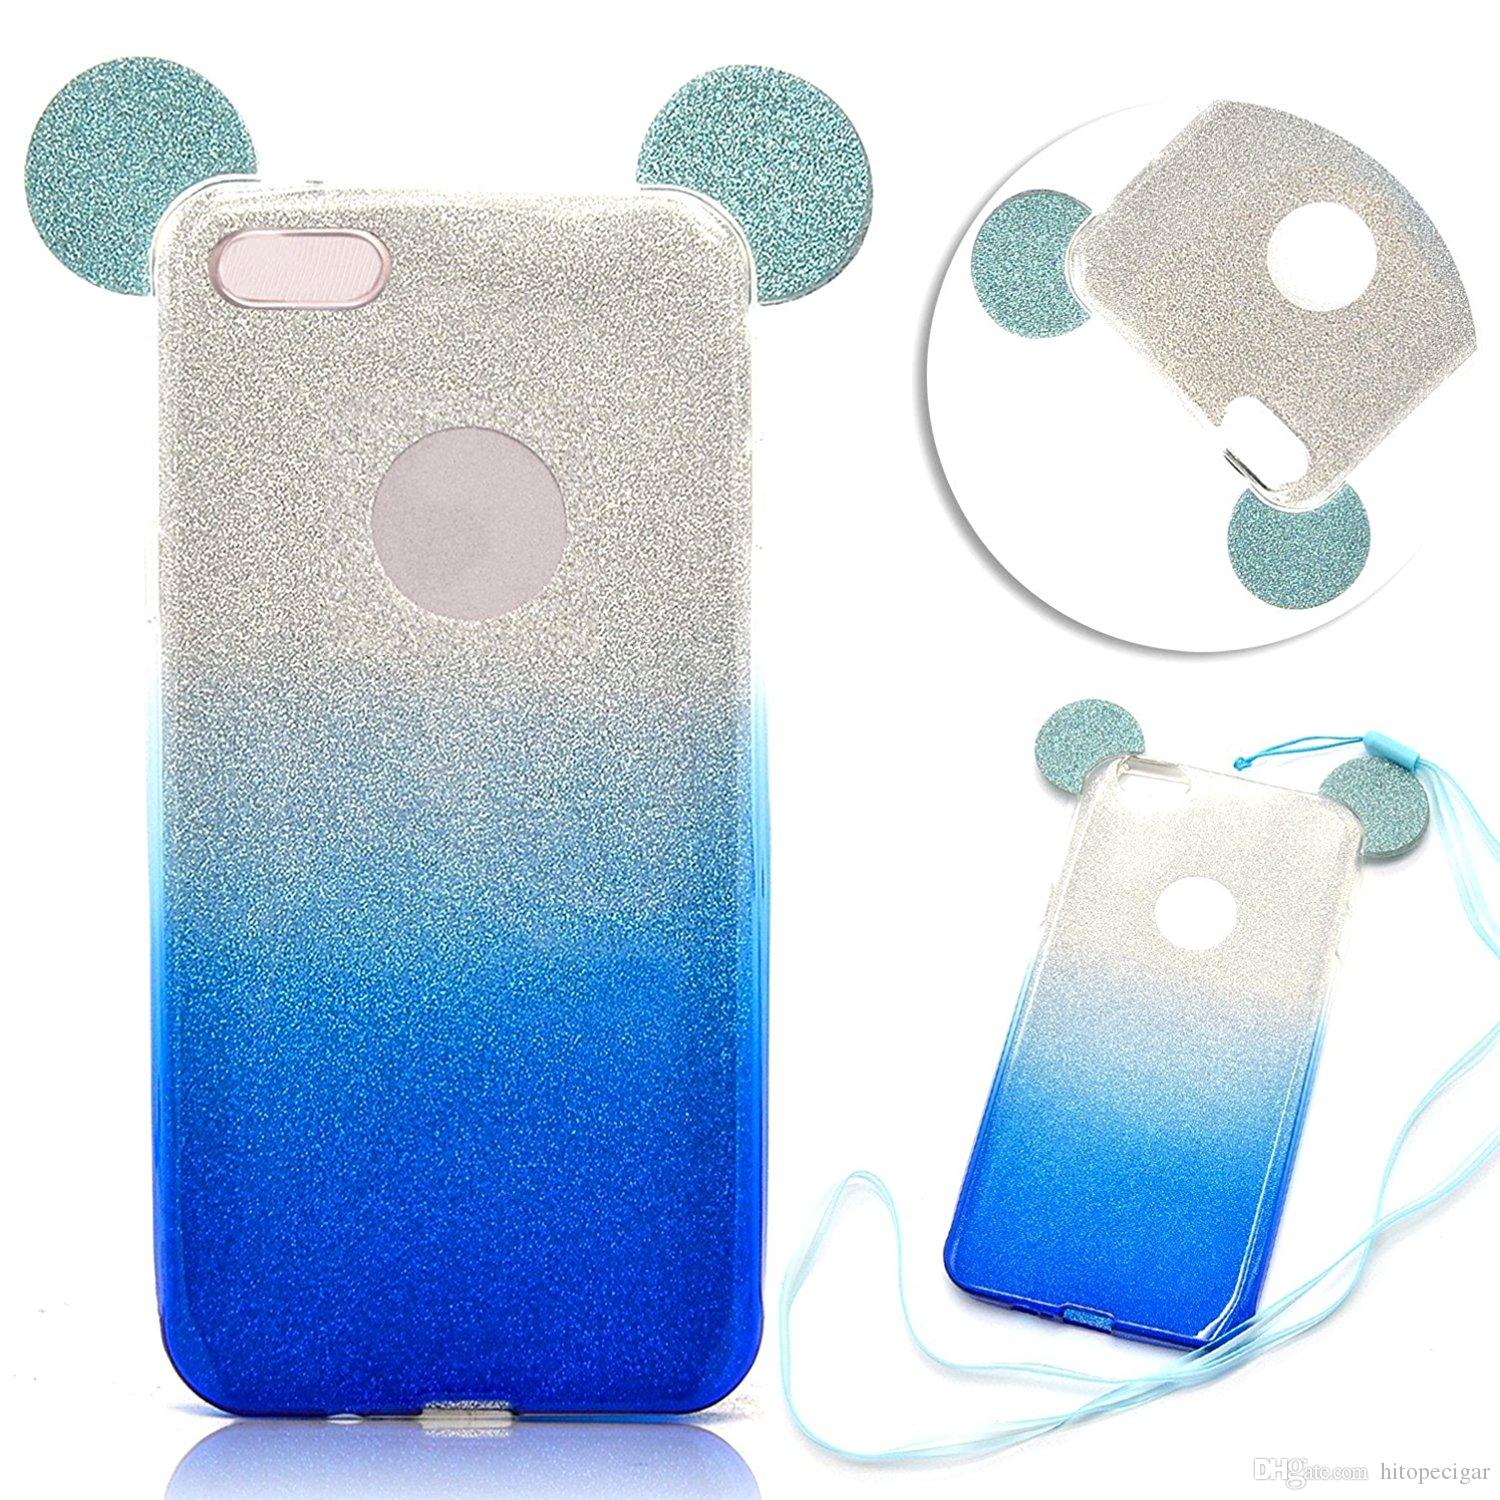 Color change online - 3d Minnie Mickey Mouse Ears Silicone Tpu Soft Glitter Gradient Case Gradual Change Color With Hang Rope For Iphone 5s 6 6s Plus 7 7plus